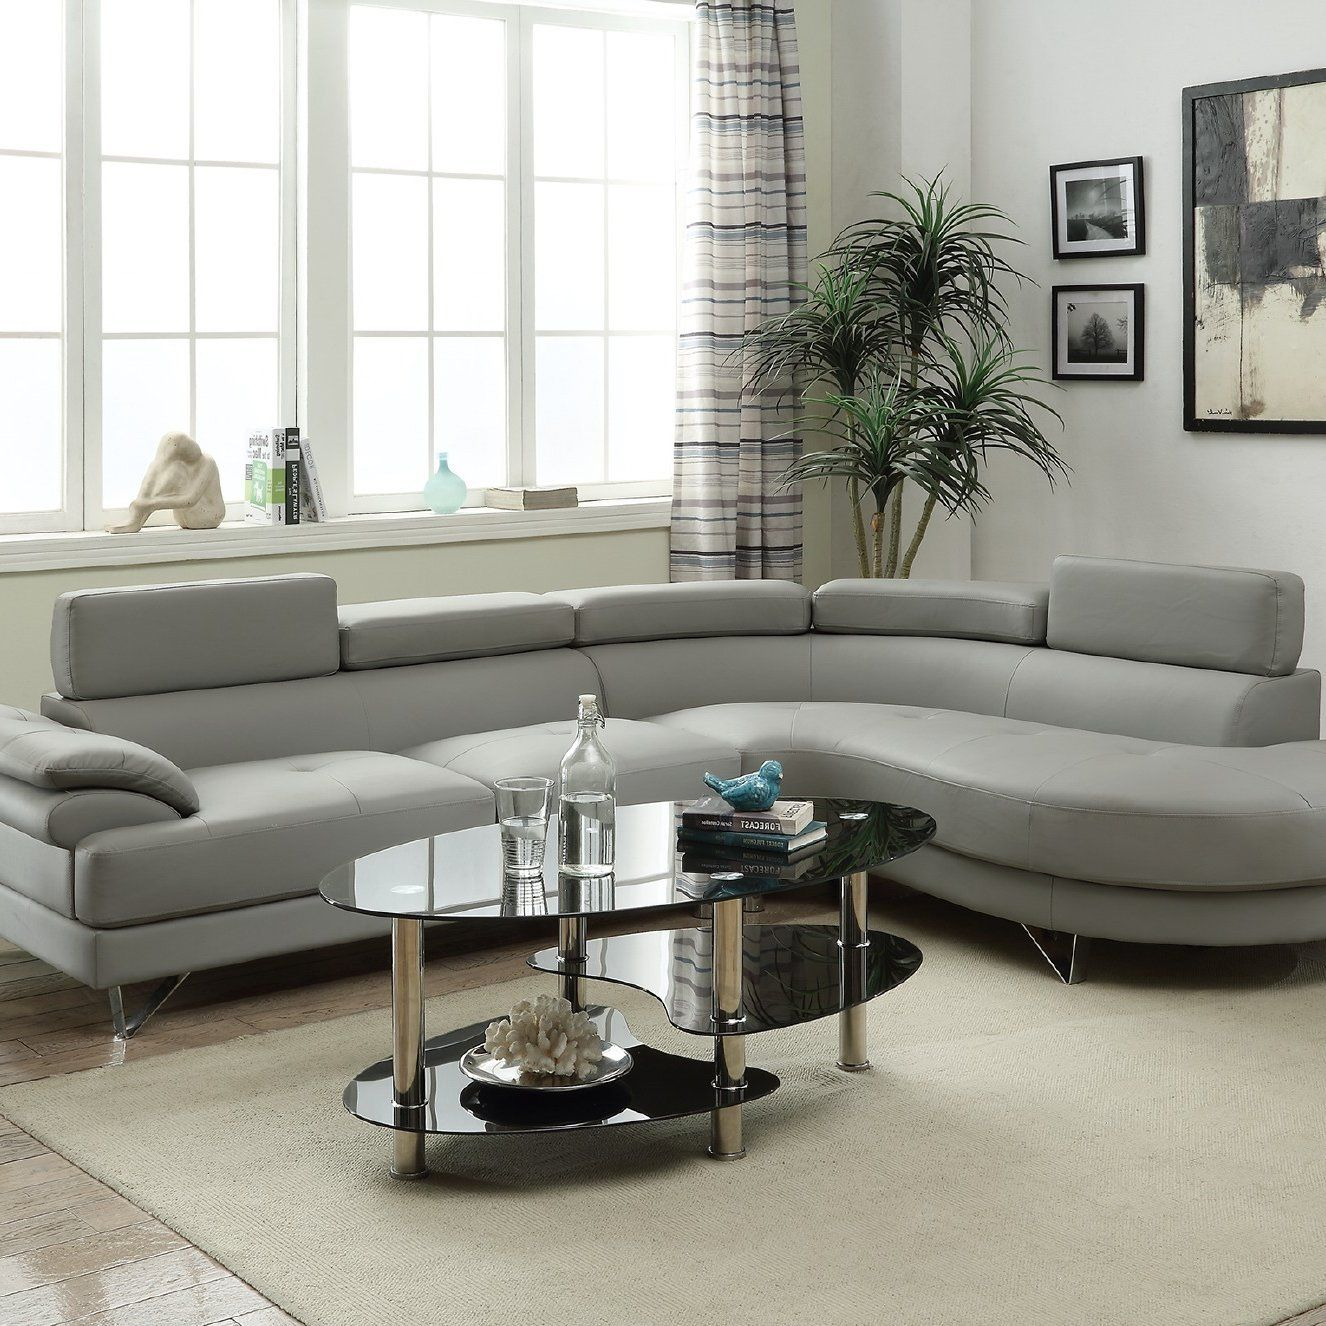 Normandy Sectional | Sectional sofa couch, Grey leather